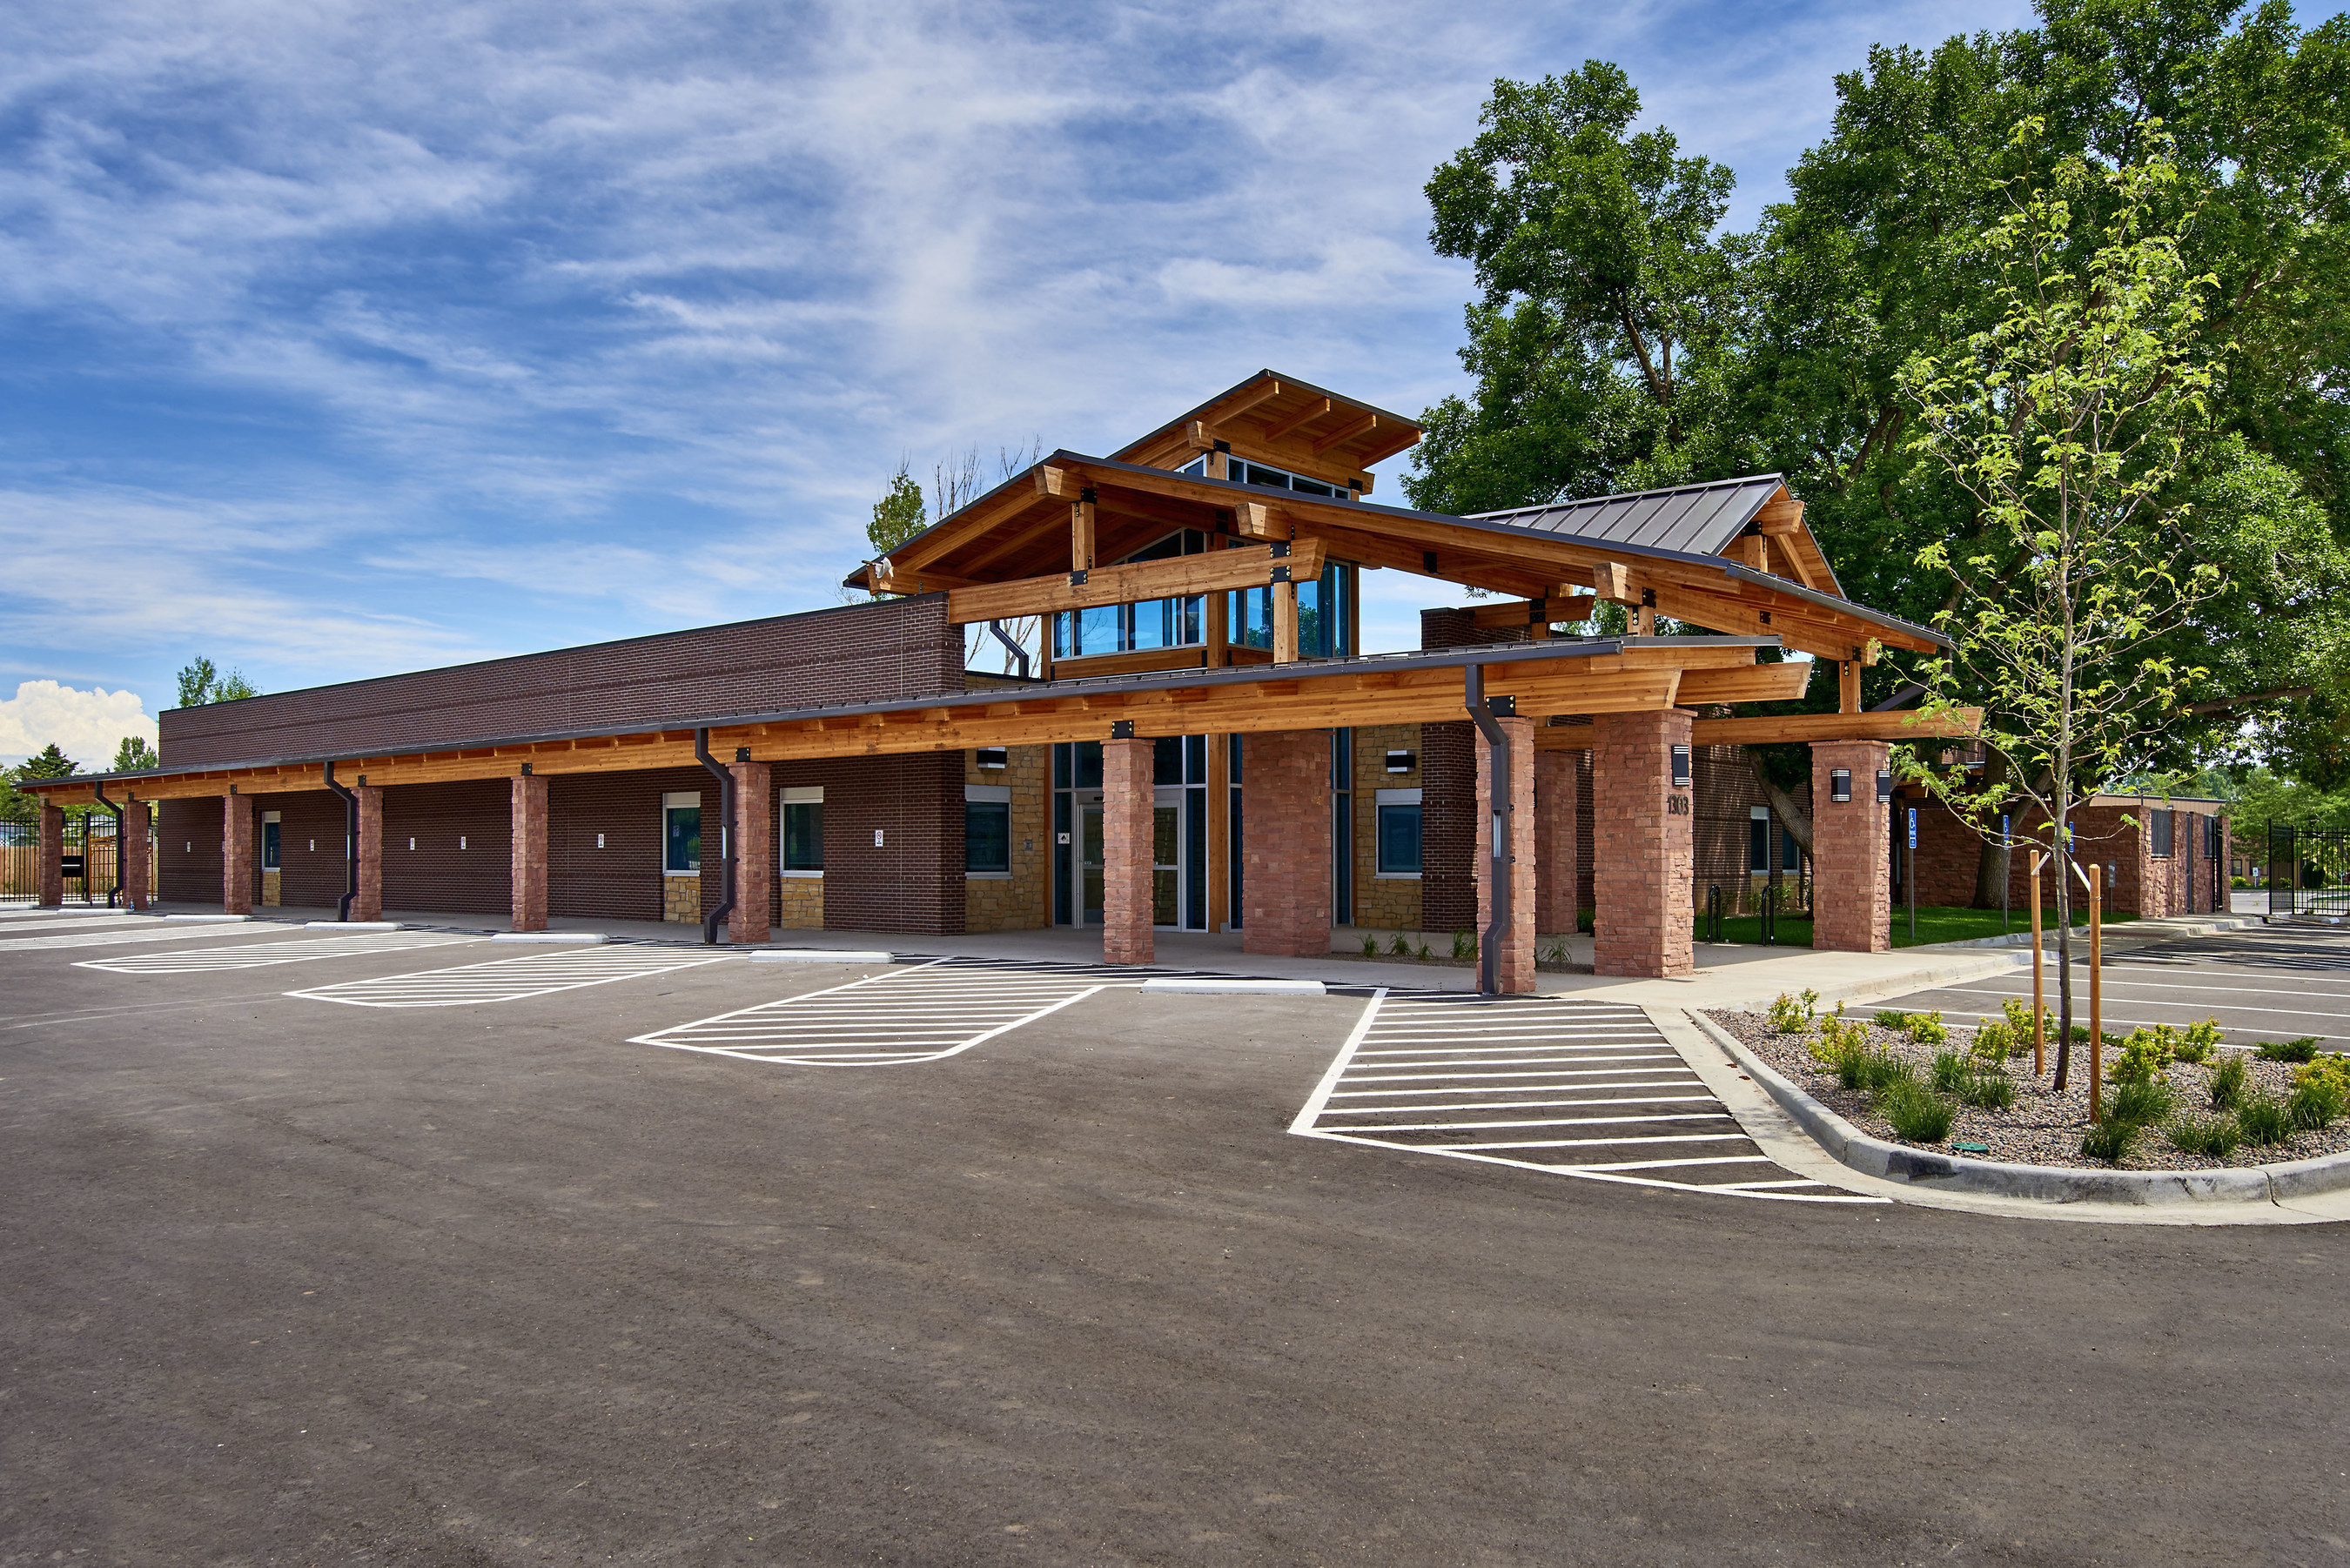 InnovAge Greater Colorado PACE-North represents the program's latest expansion as the sixth InnovAge PACE center to open in the state. The center will serve Northern Colorado's growing senior population in the areas of Loveland, Fort Collins, and Greeley.